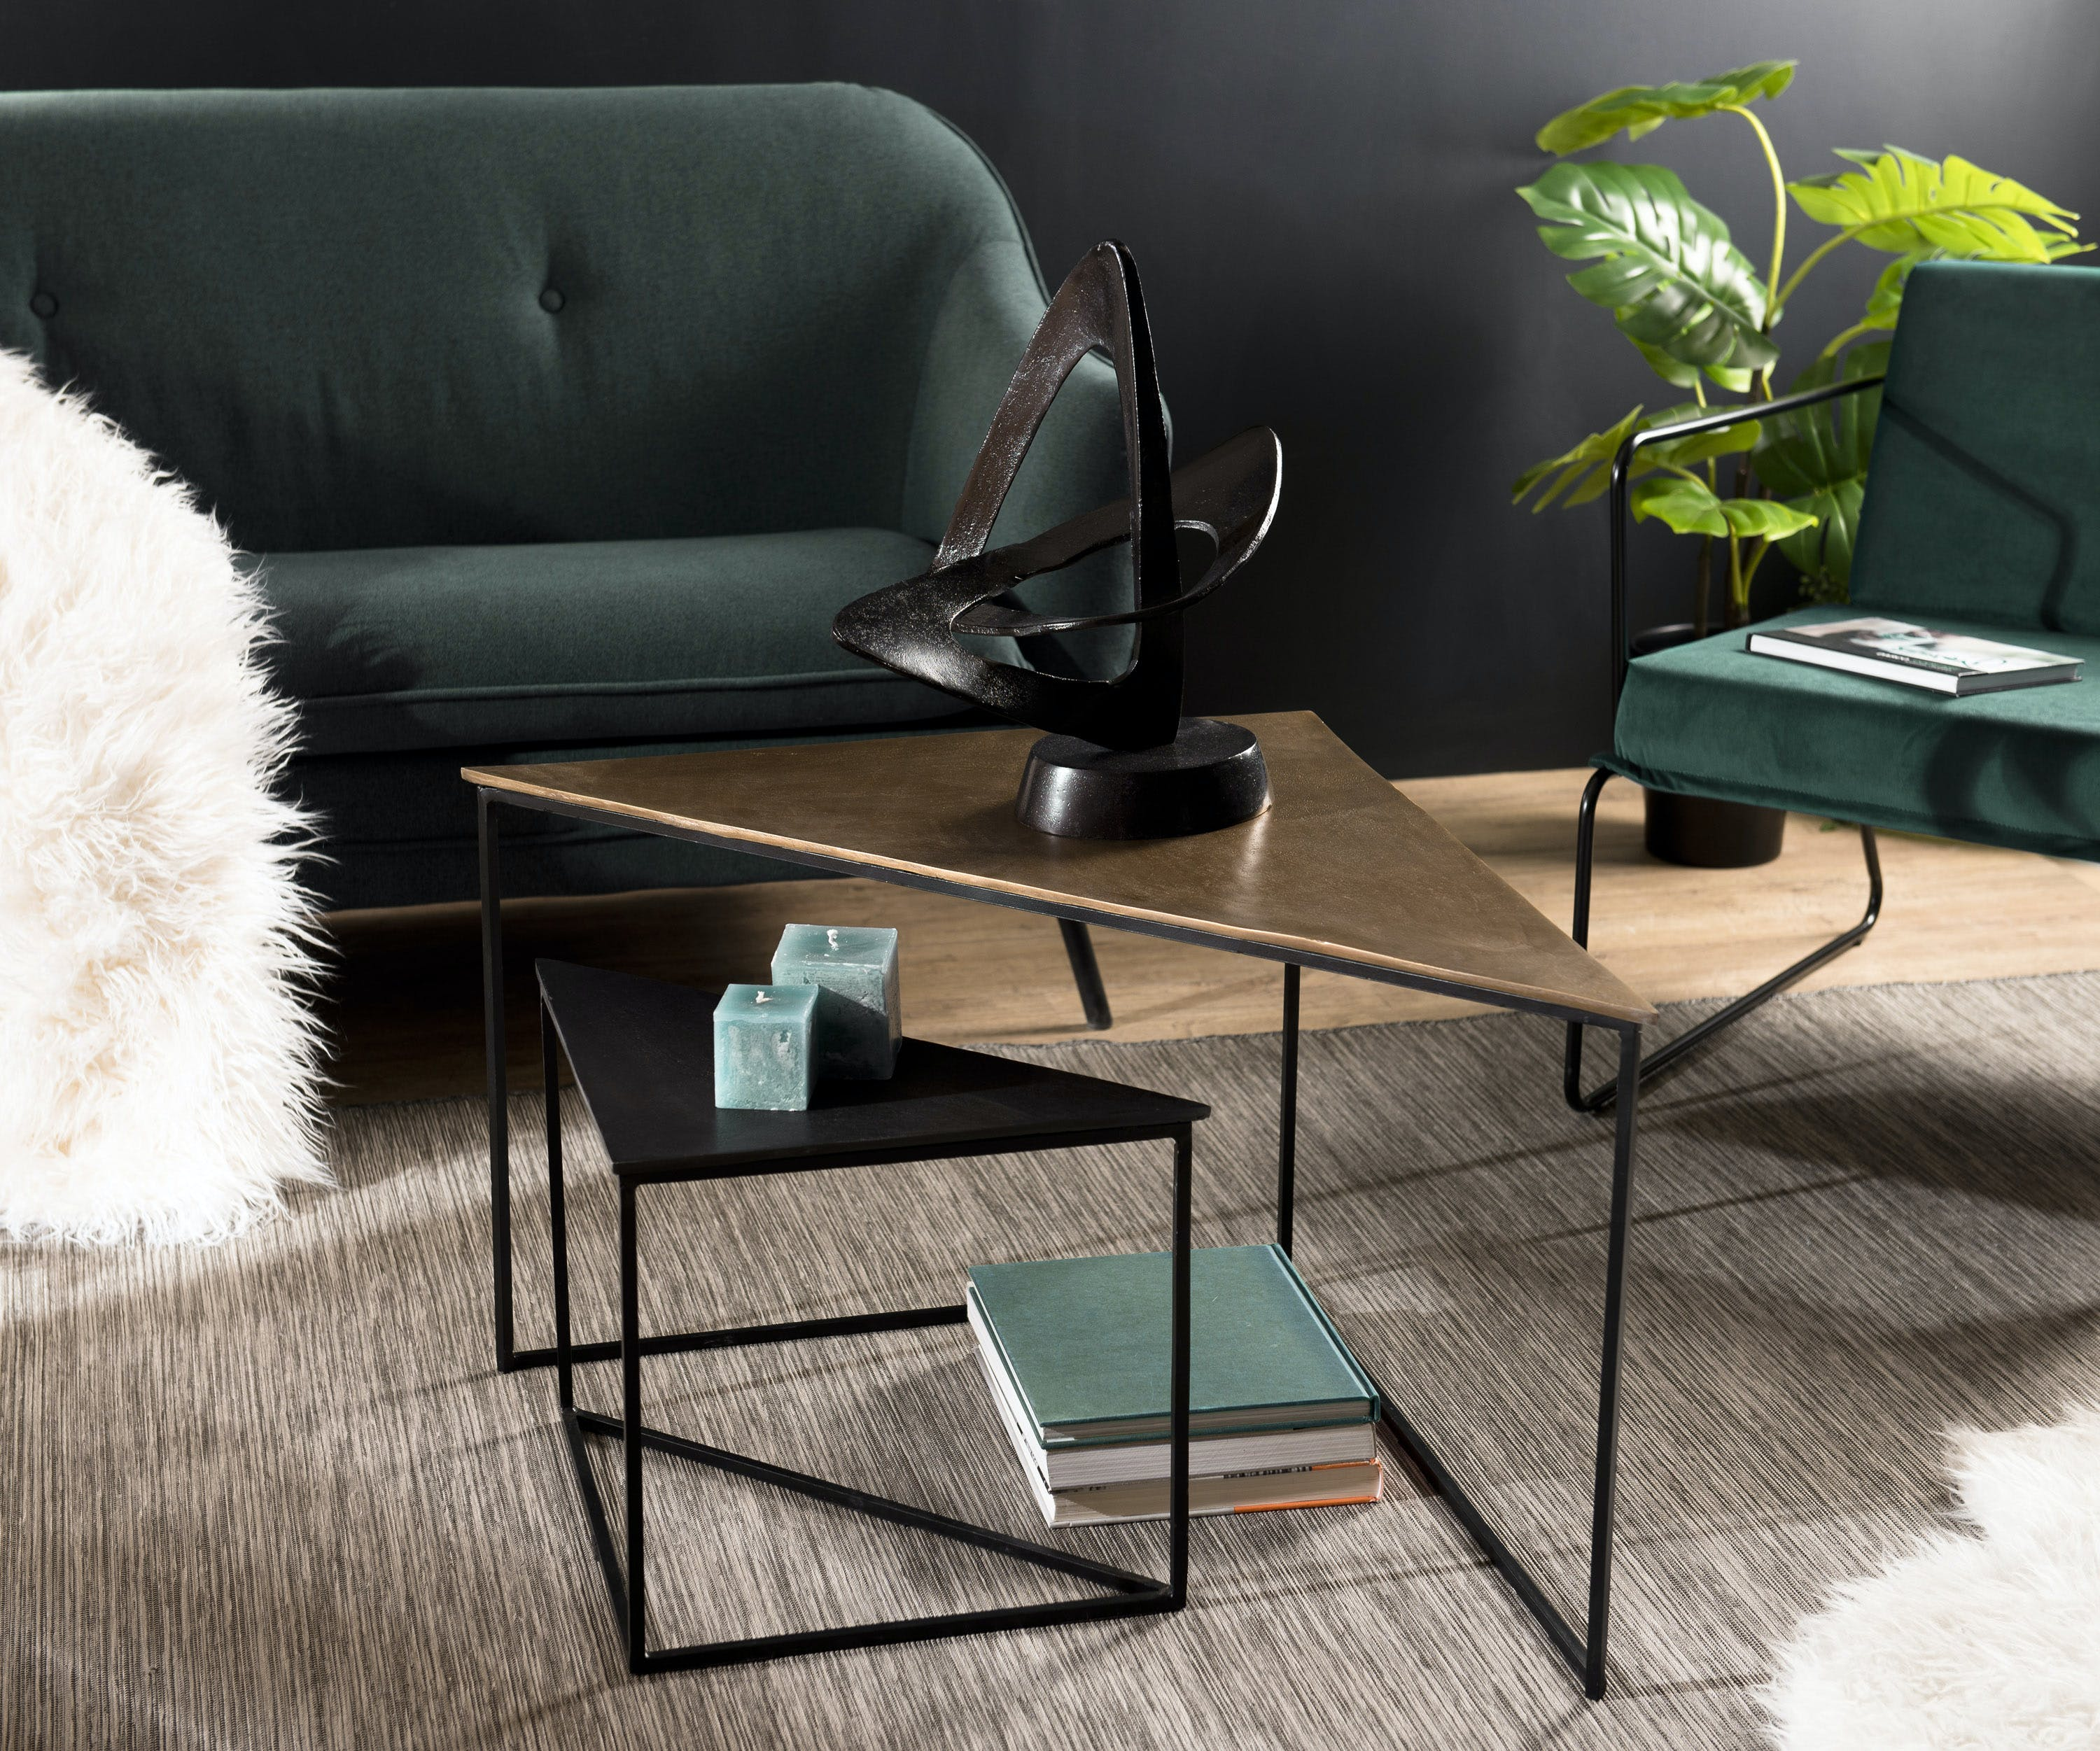 Basse Import GigognePier Table Import Table GigognePier Table Basse WQrdCexEBo